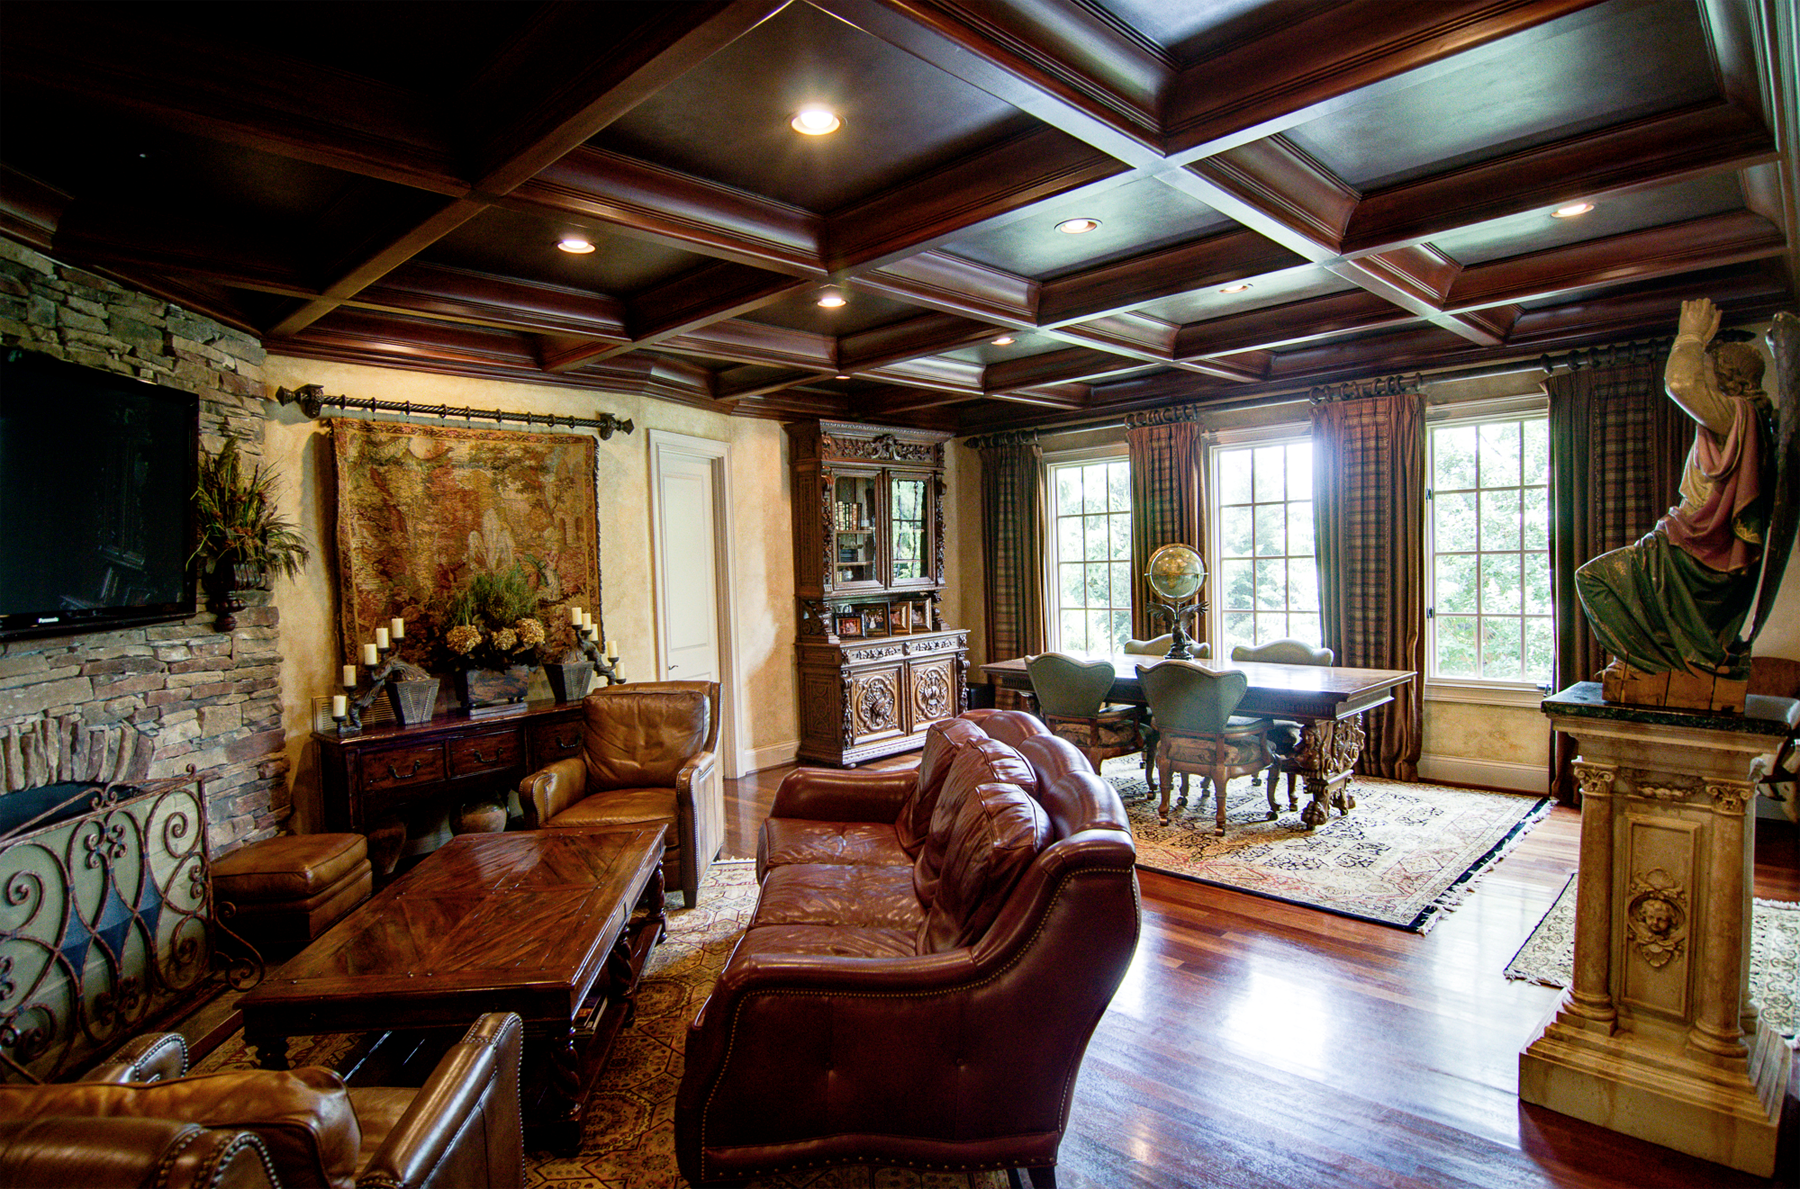 Wood grained coffer ceiling with faux metal inserts and Tuscan colored plaster walls.